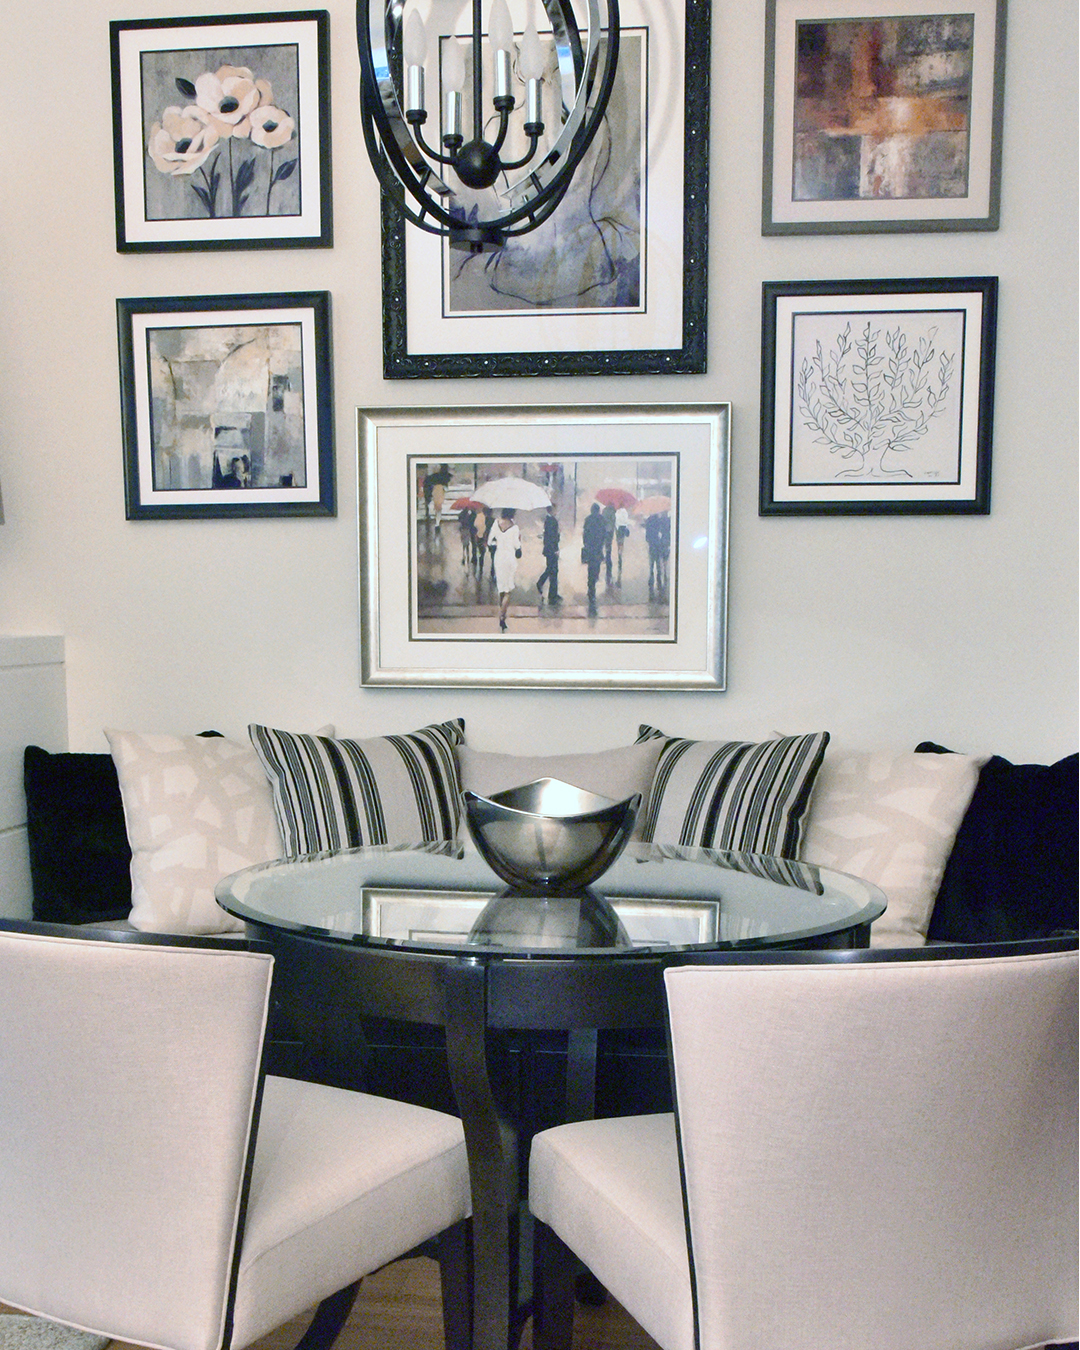 Banquette & Gallery Wall Design by Tracy Svendsen